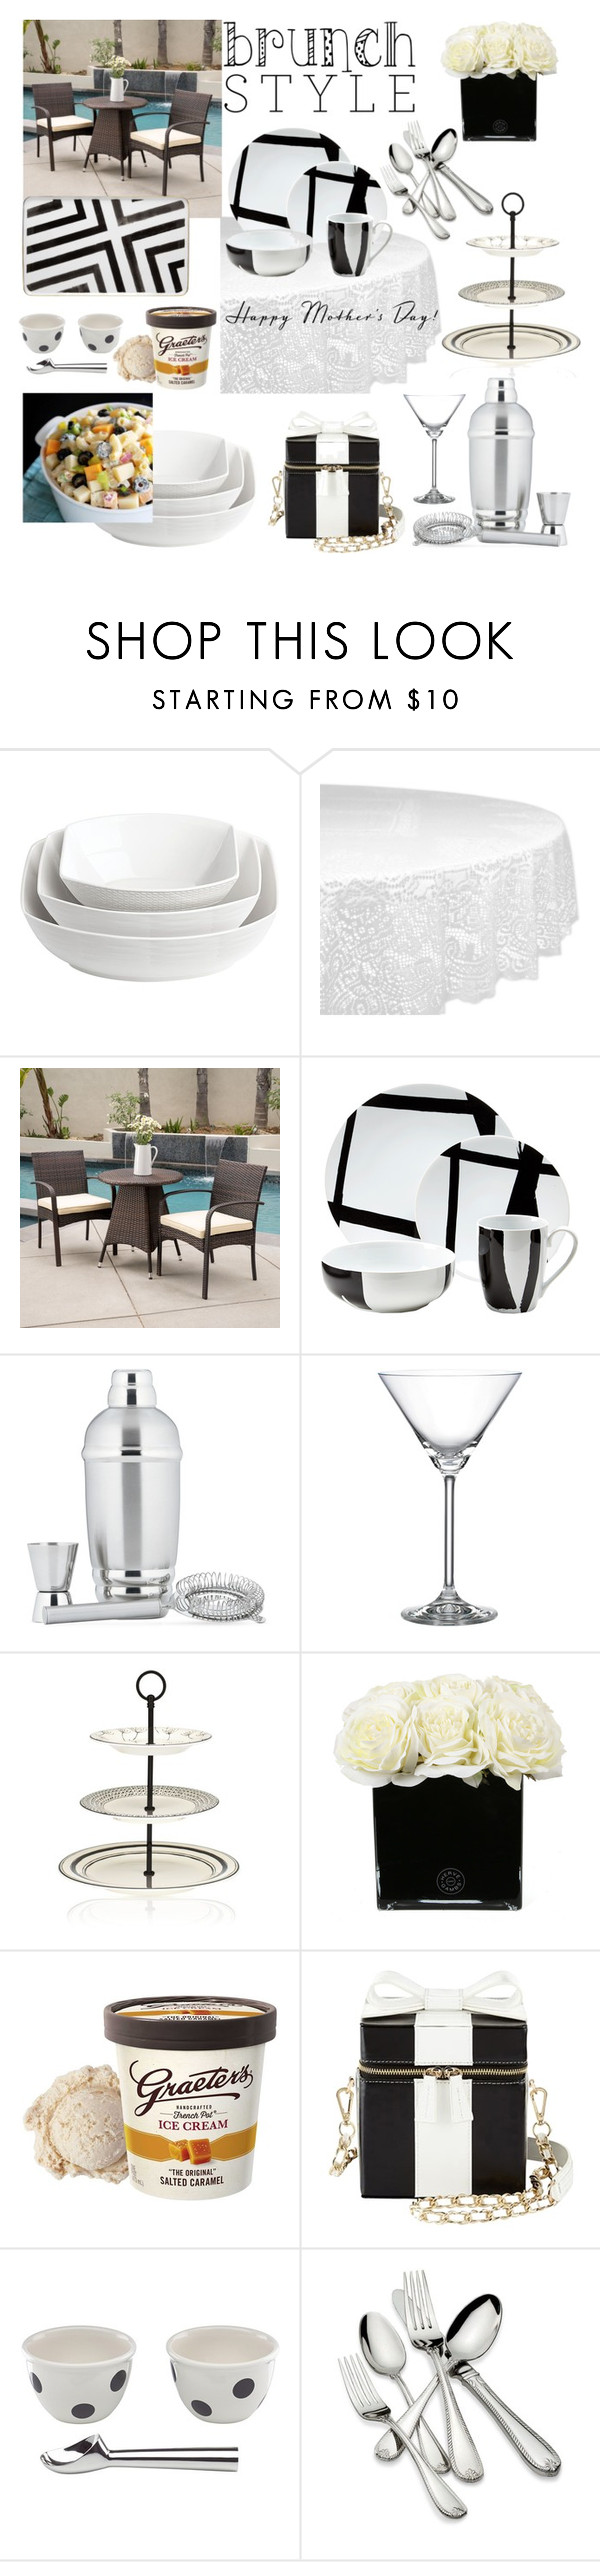 """""""Mother's Day Brunch"""" by jamie1975 ❤ liked on Polyvore featuring interior, interiors, interior design, home, home decor, interior decorating, Lenox, Design Imports, Christopher Knight Home and Hervé Gambs"""